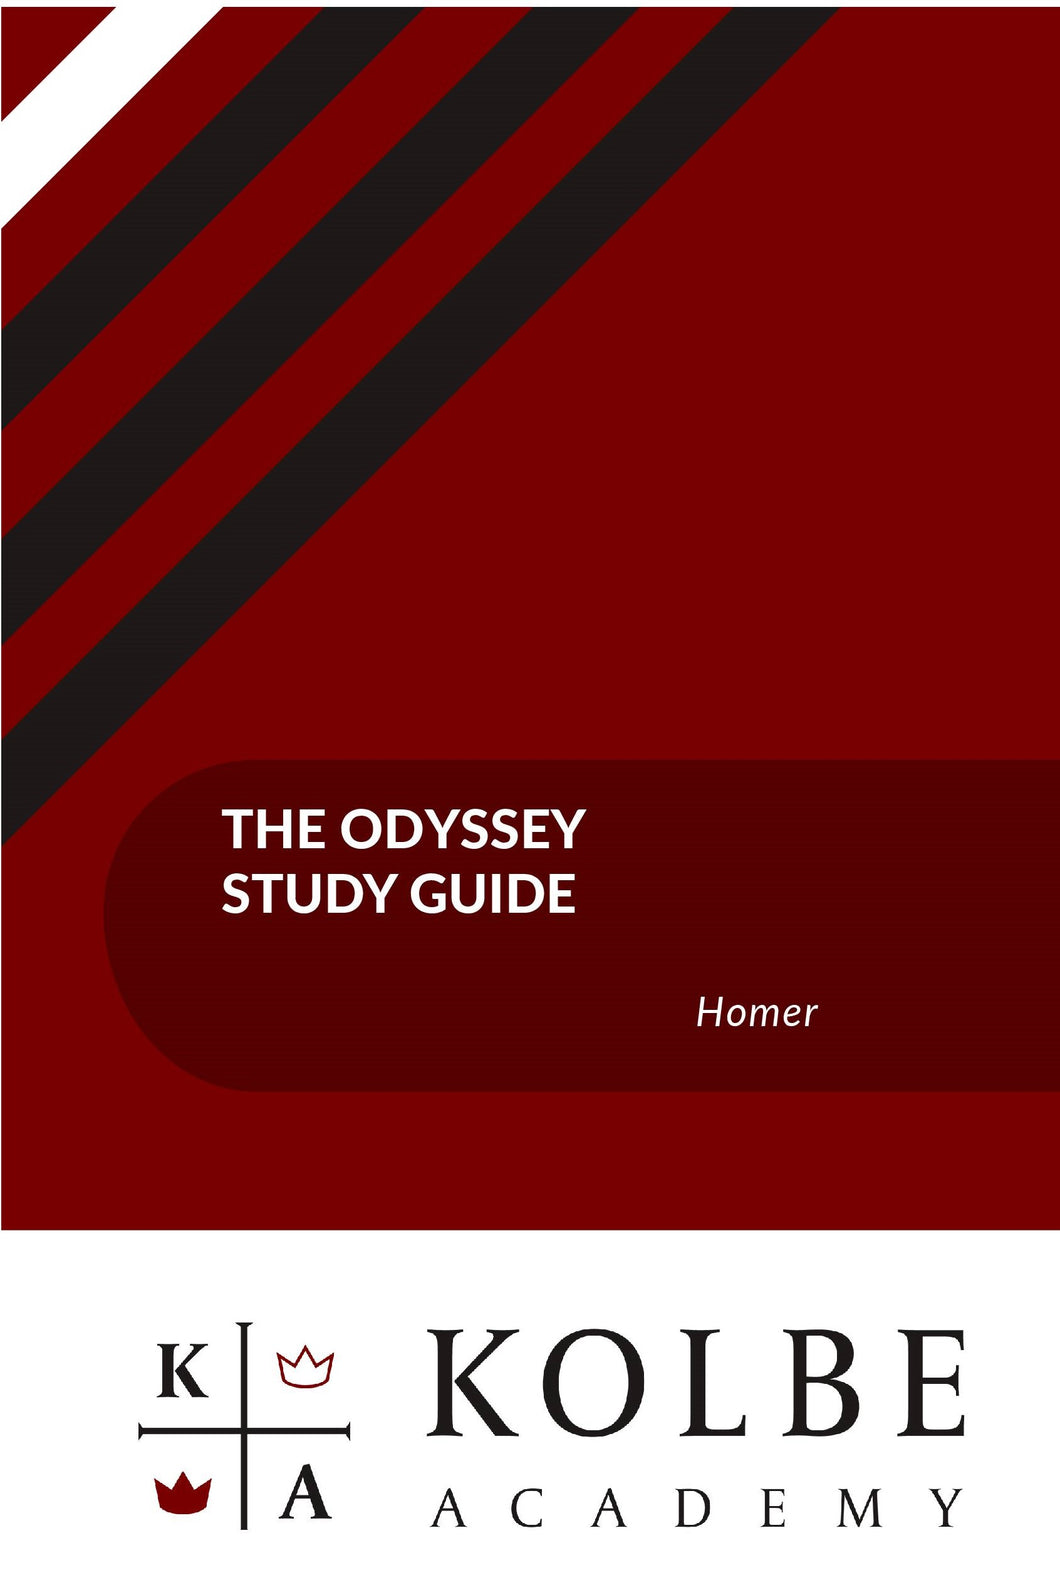 The Odyssey Study Guides